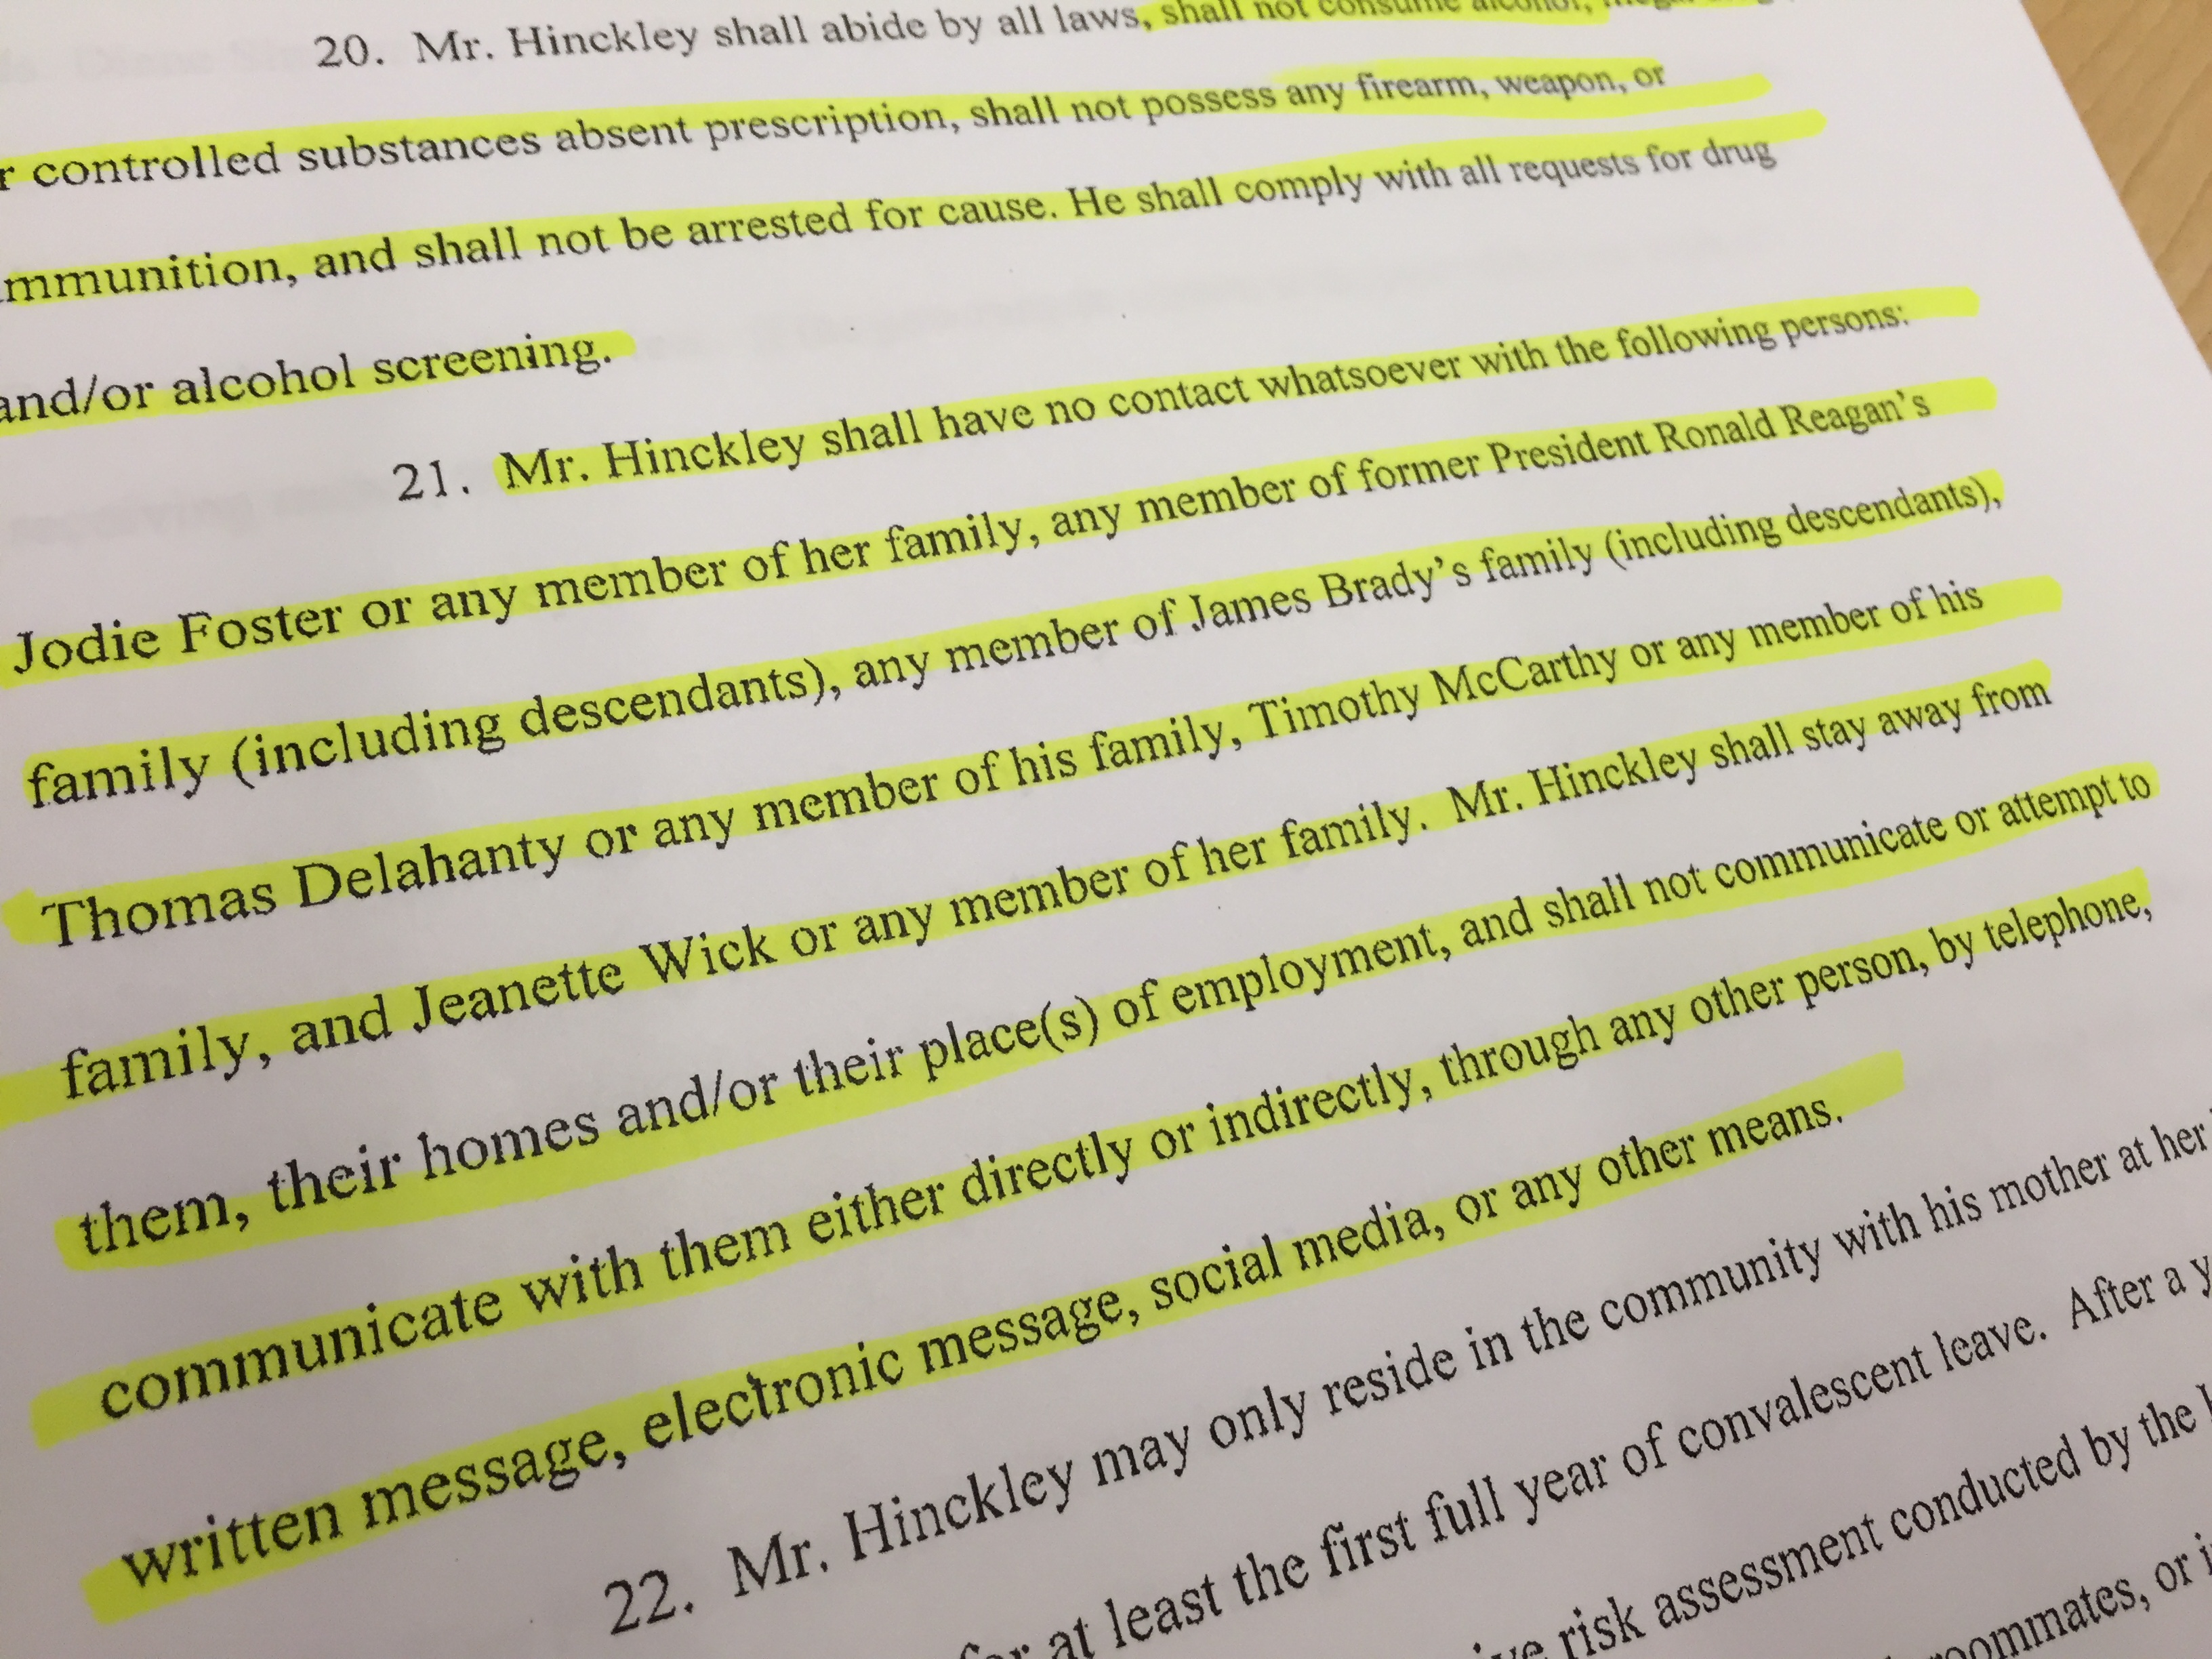 With freedom, Hinckley faces scrutiny of girlfriends, internet use